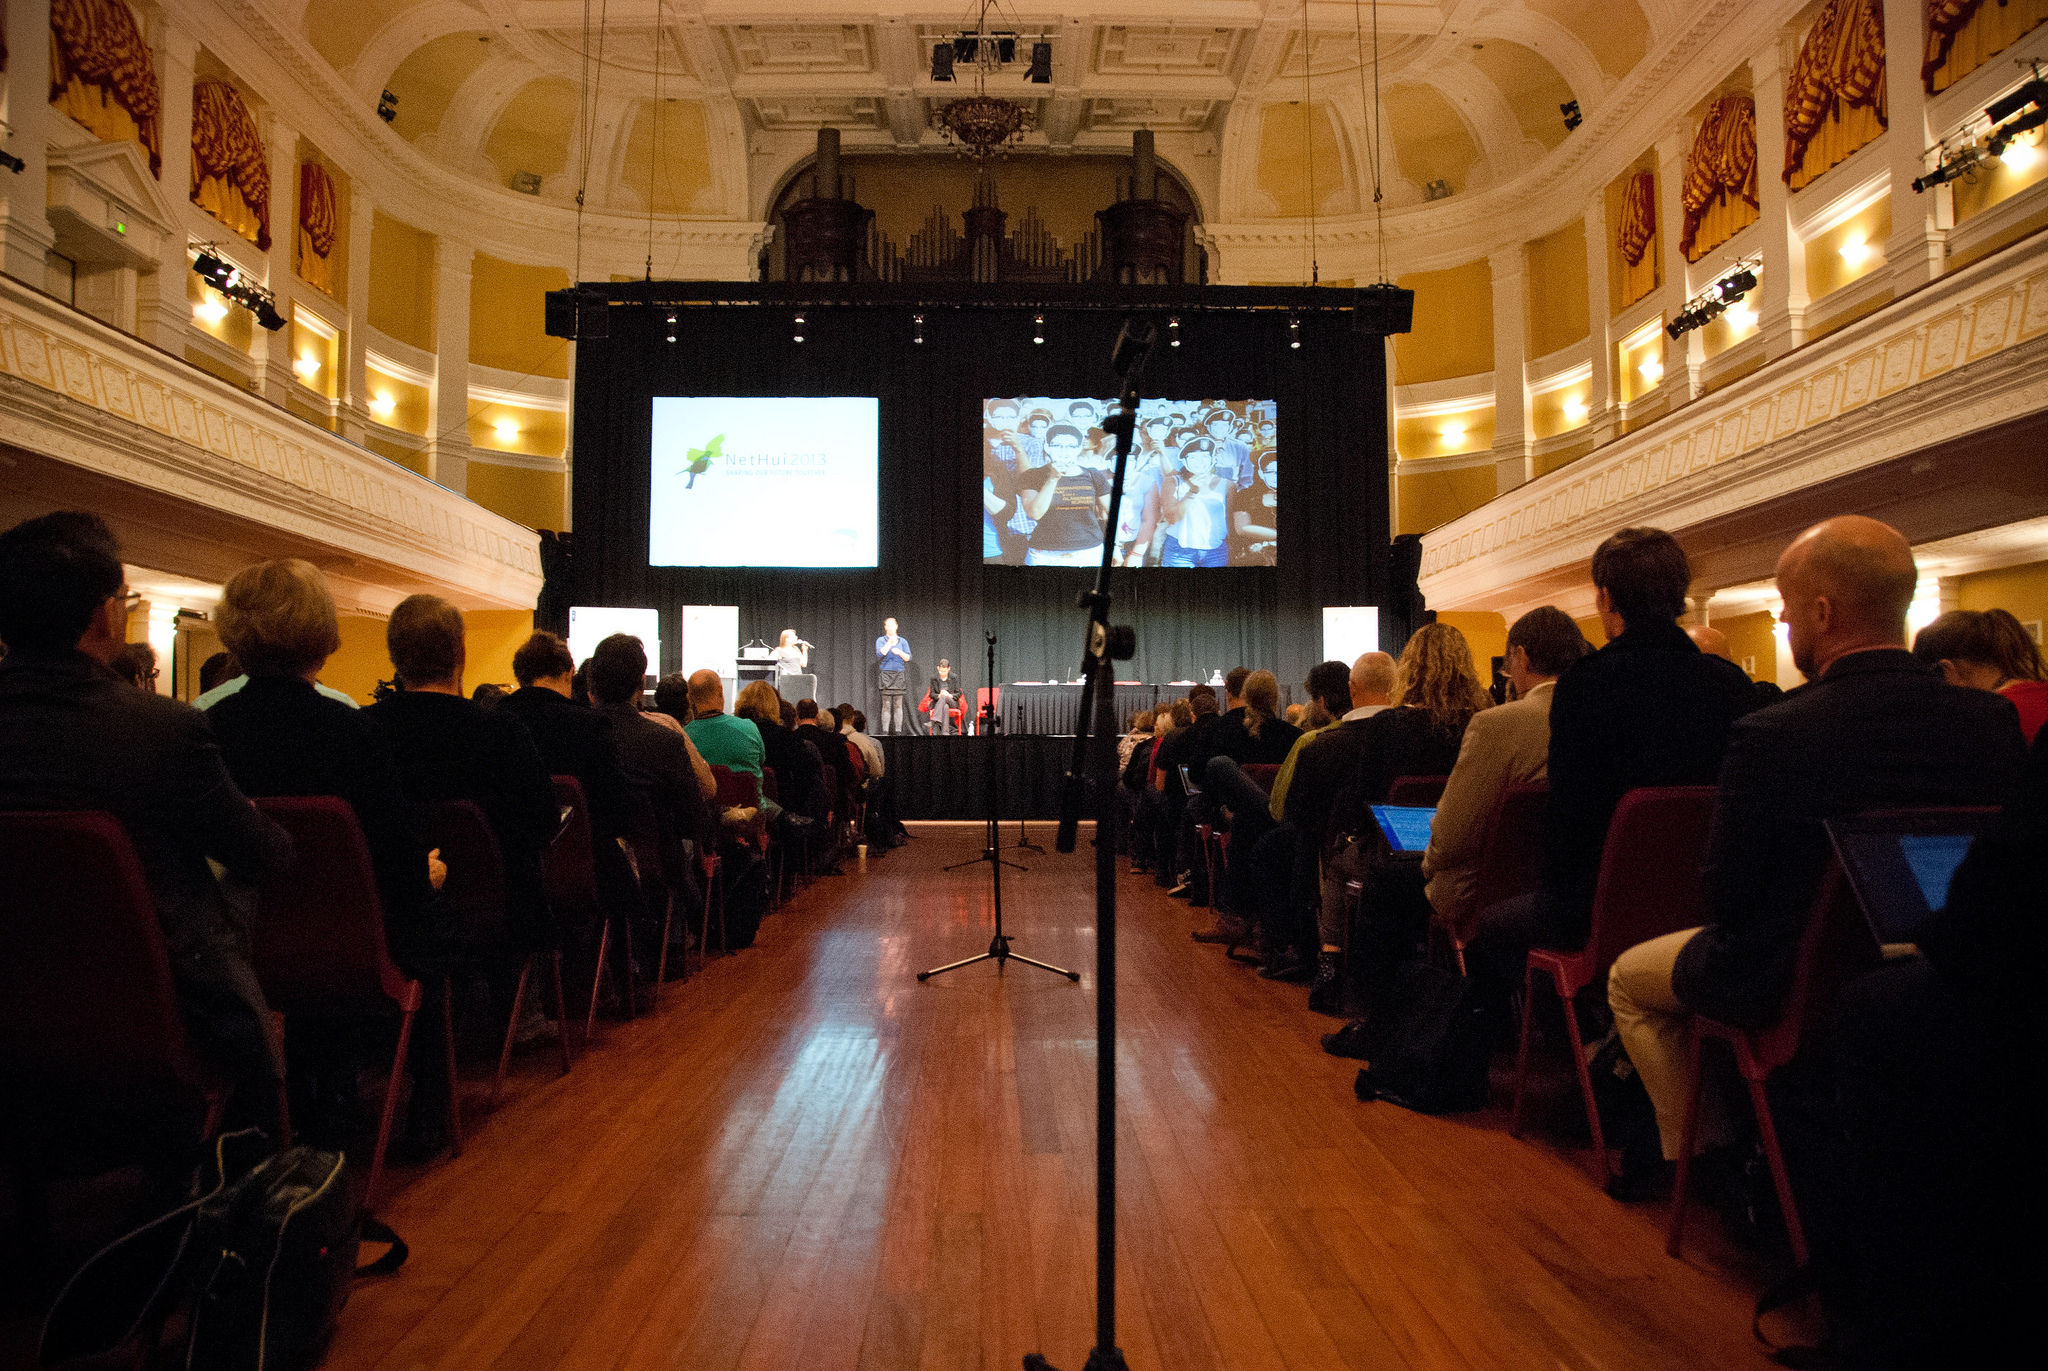 Attendance has grown each year at NetHui events